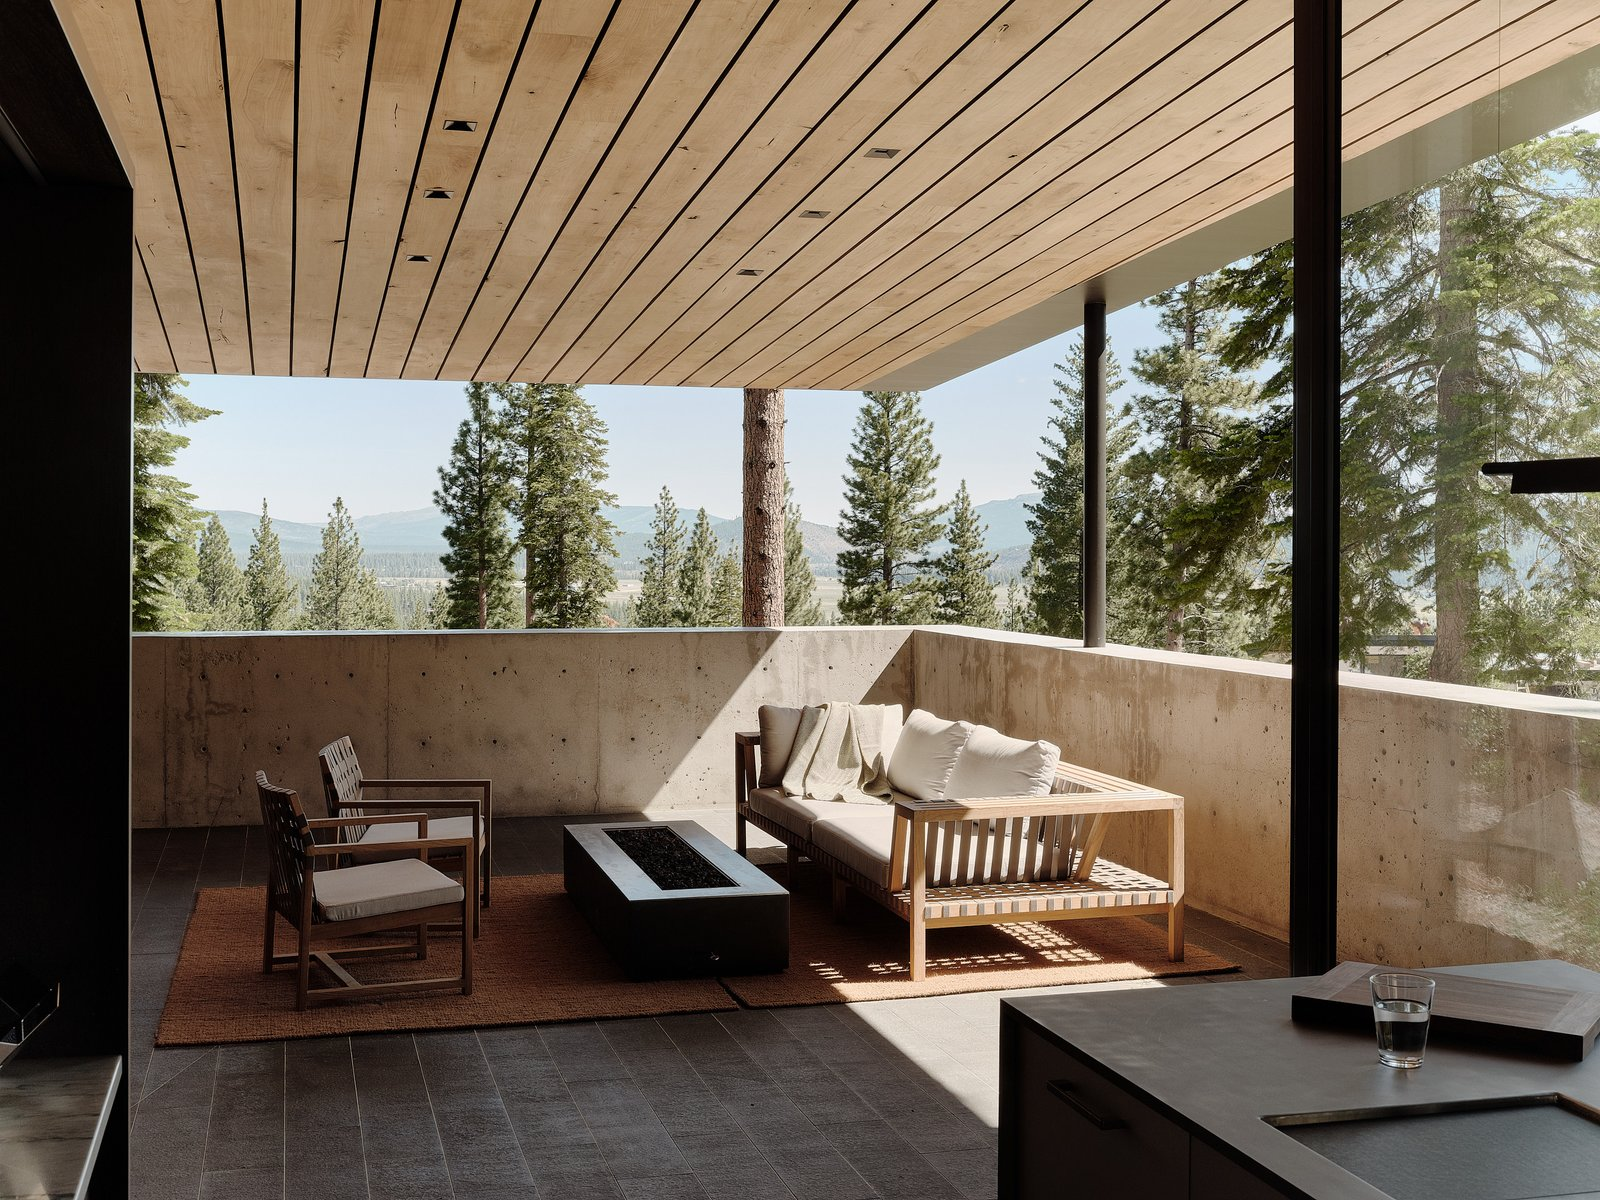 Outdoor Lookout  House  Lookout House by Faulkner Architects